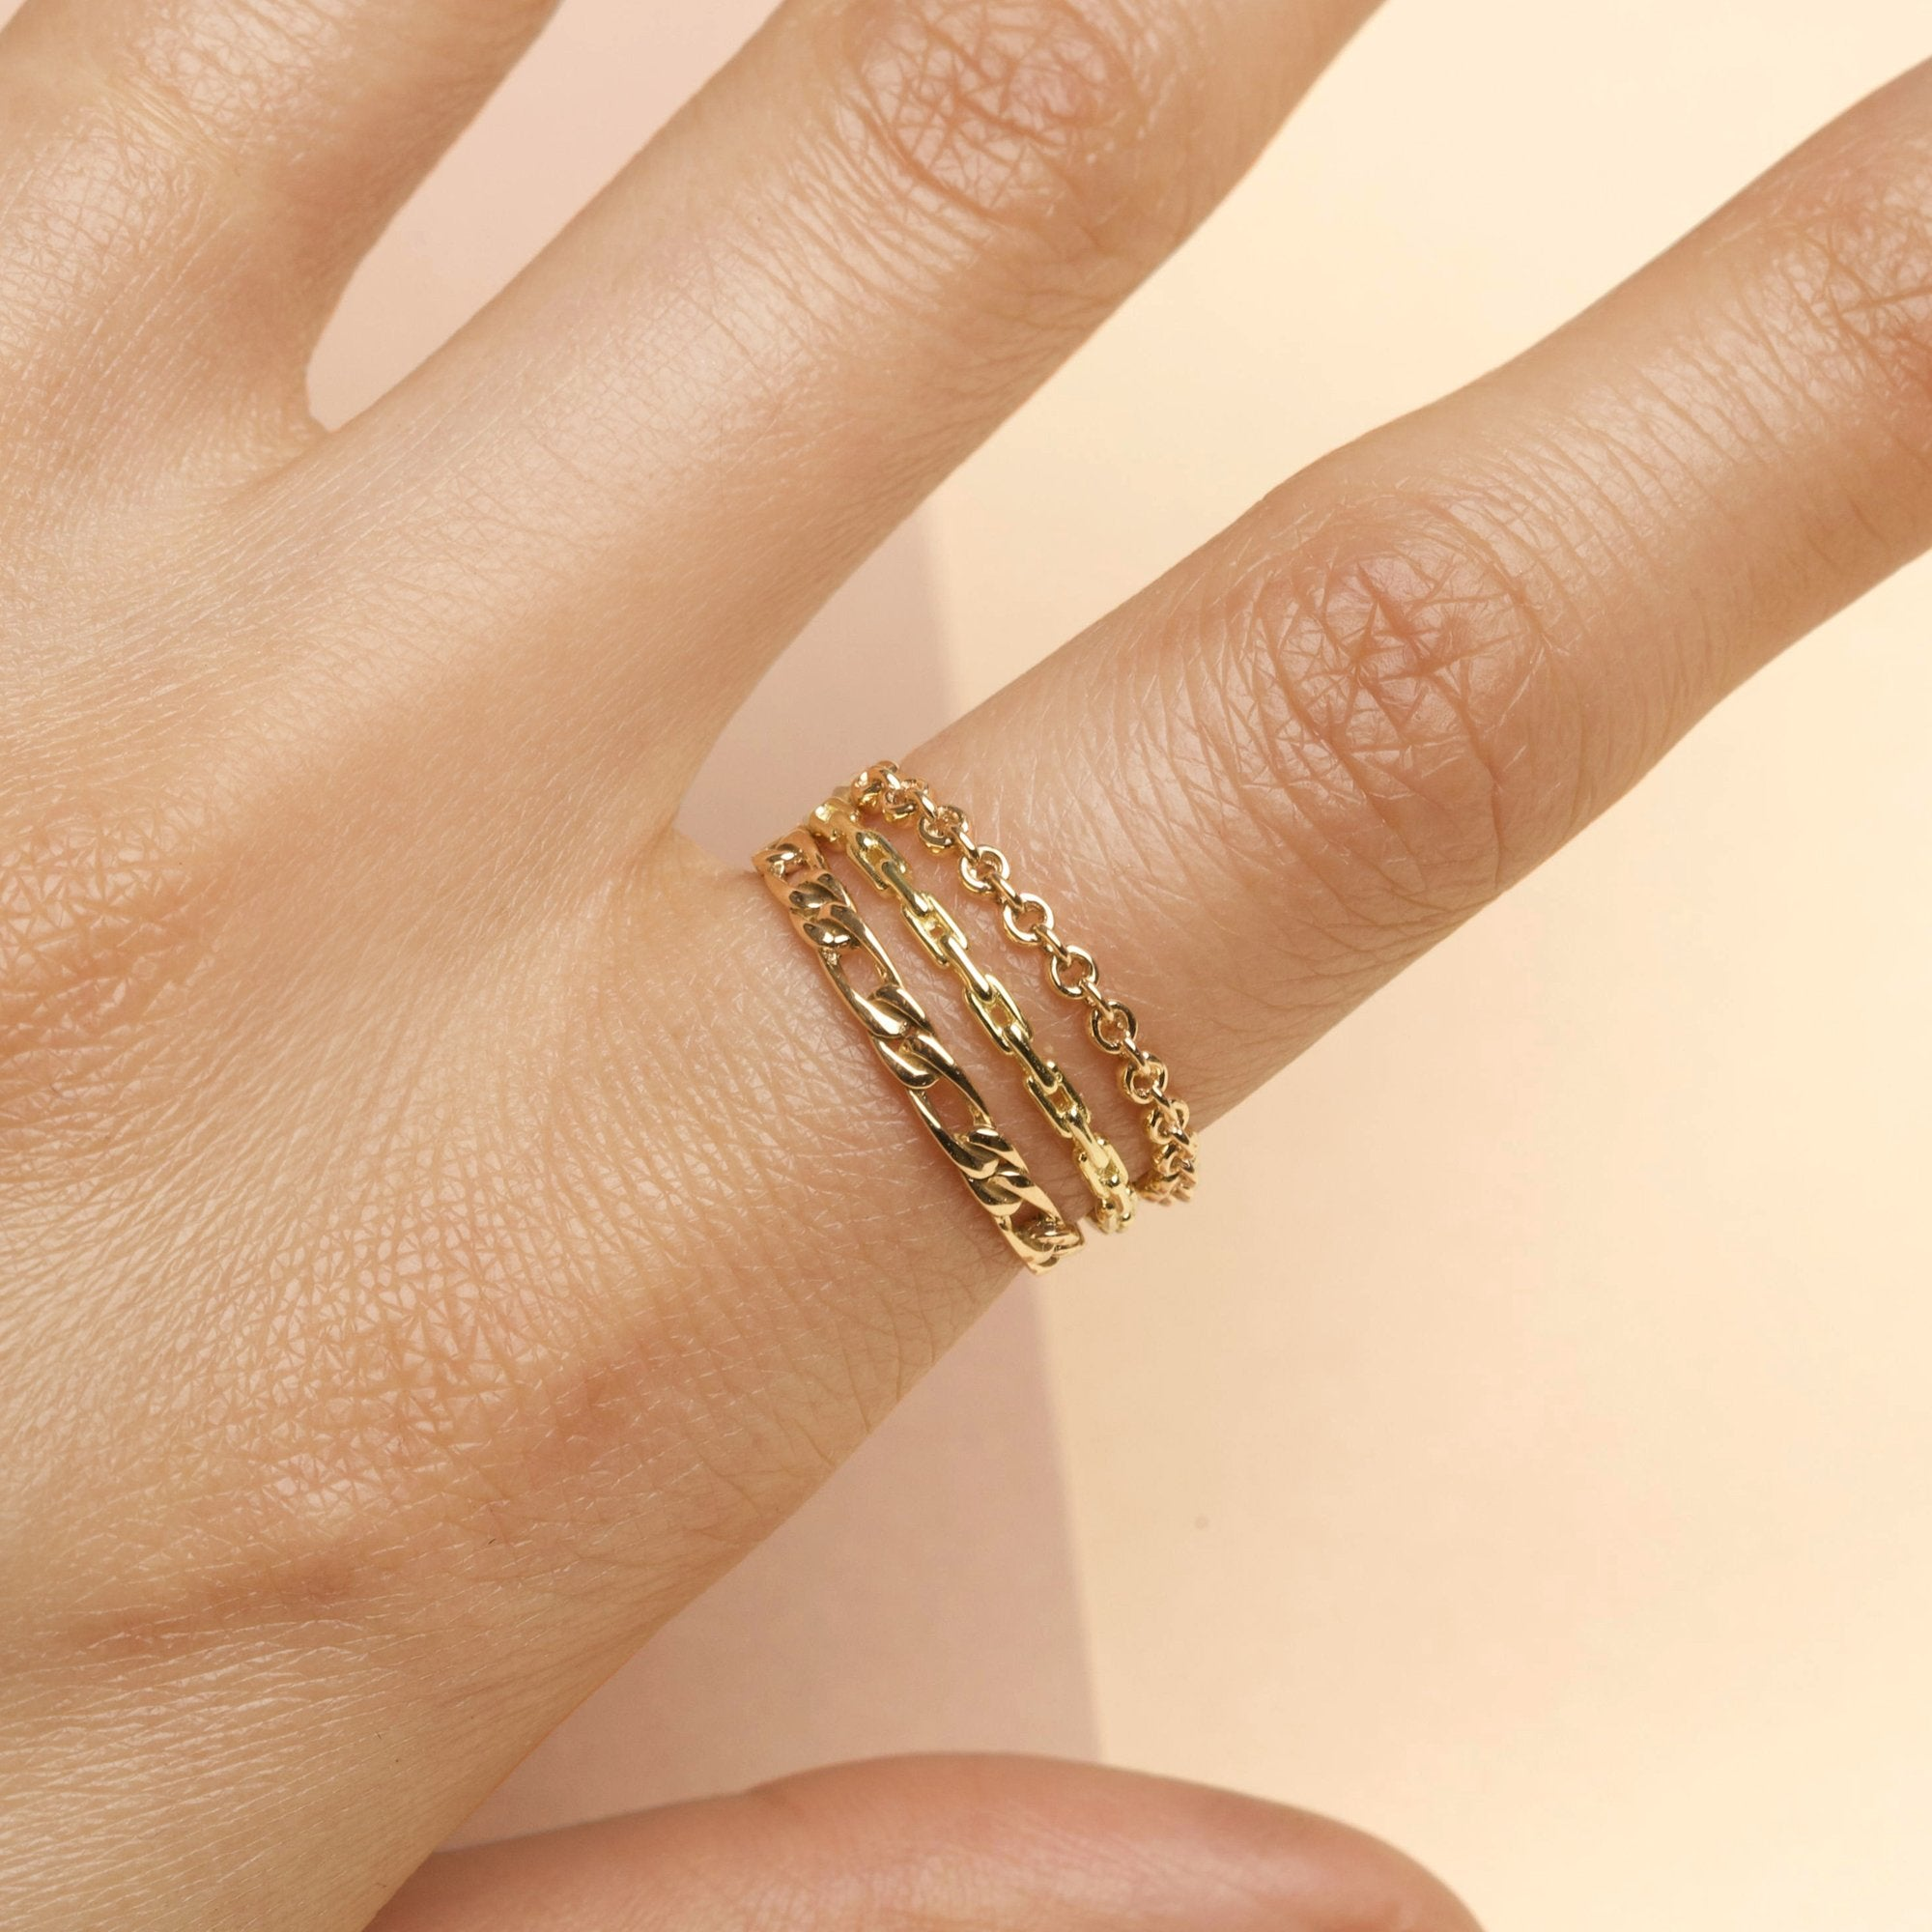 Thin Gold Chainlink Ring